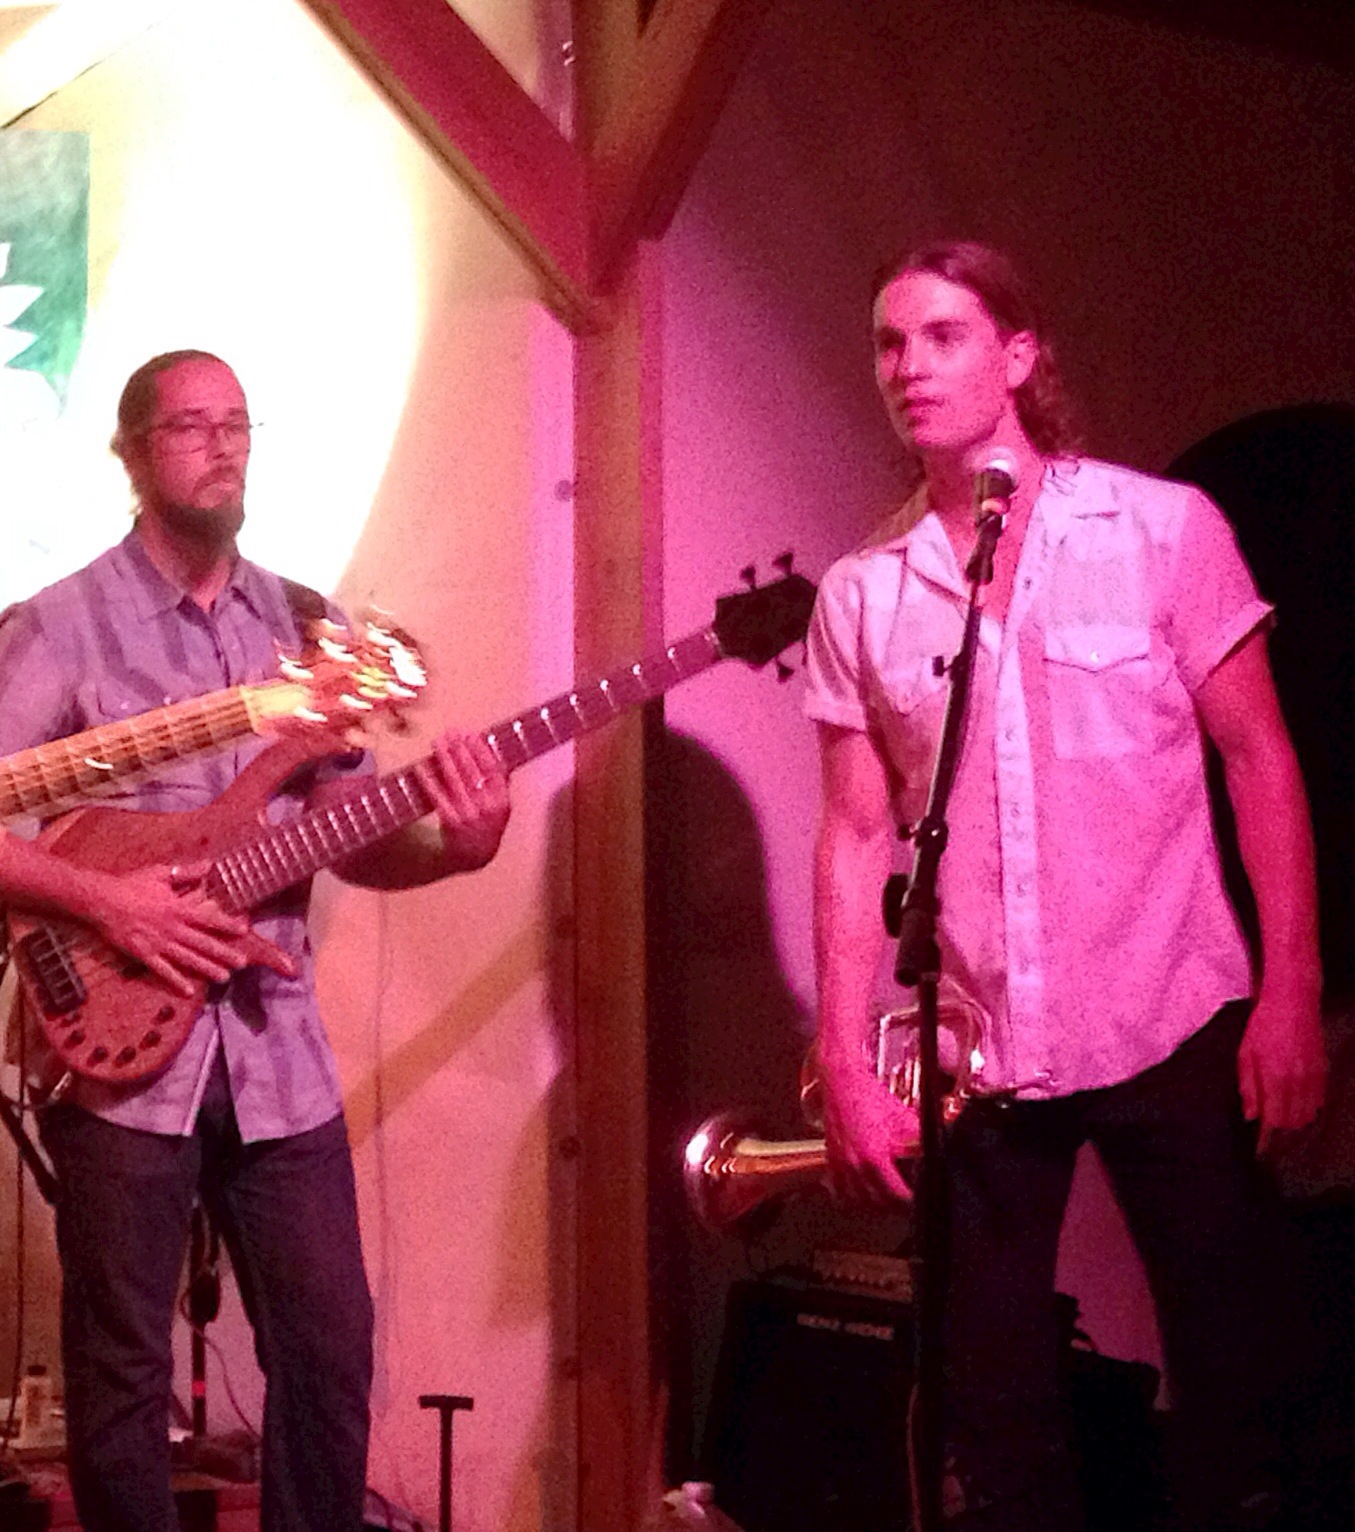 +Elijah- and the Band of Light experience featuring Max Ribner